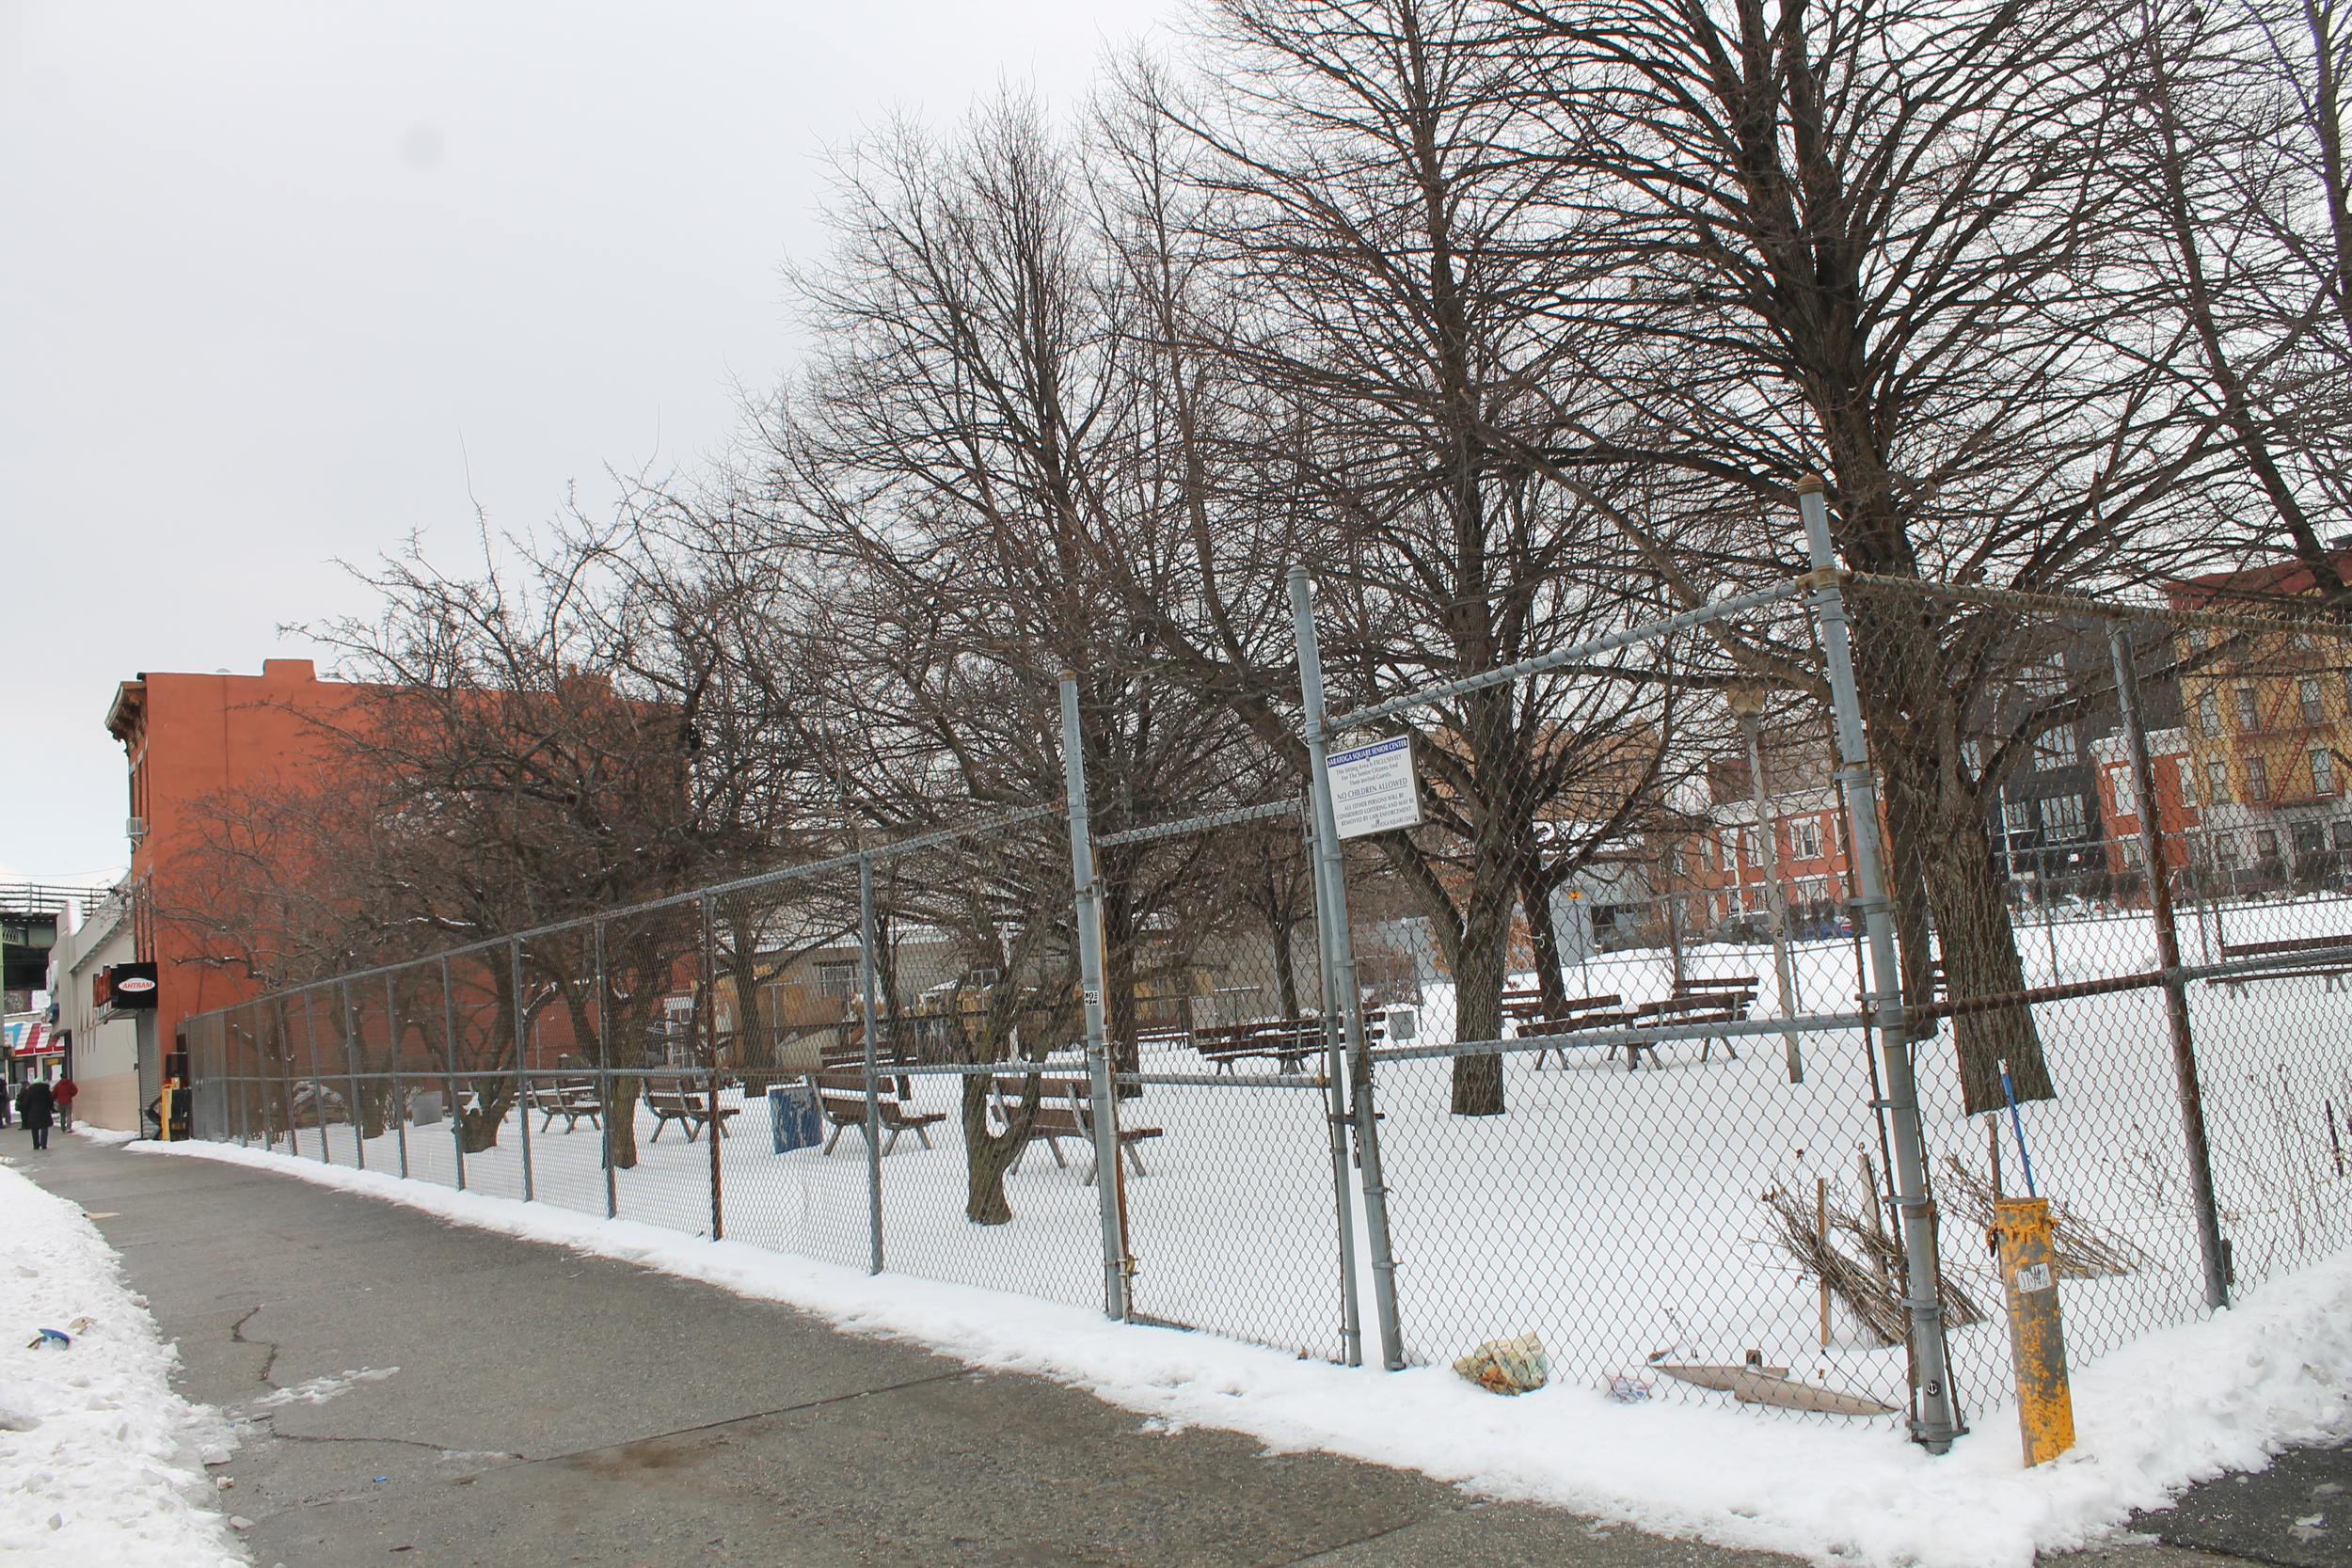 The sale of Saratoga Square included thepark in the foreground, which is adjacent to 930 Halsey Street, and the vast parking lot in the background, which is located along Macon Street, as seen on March 2, 2015. The park and the parking lot are equal to or exceed the size of the footprint of 930 Halsey Street and 55 Saratoga Avenue. Credit : Louis Flores